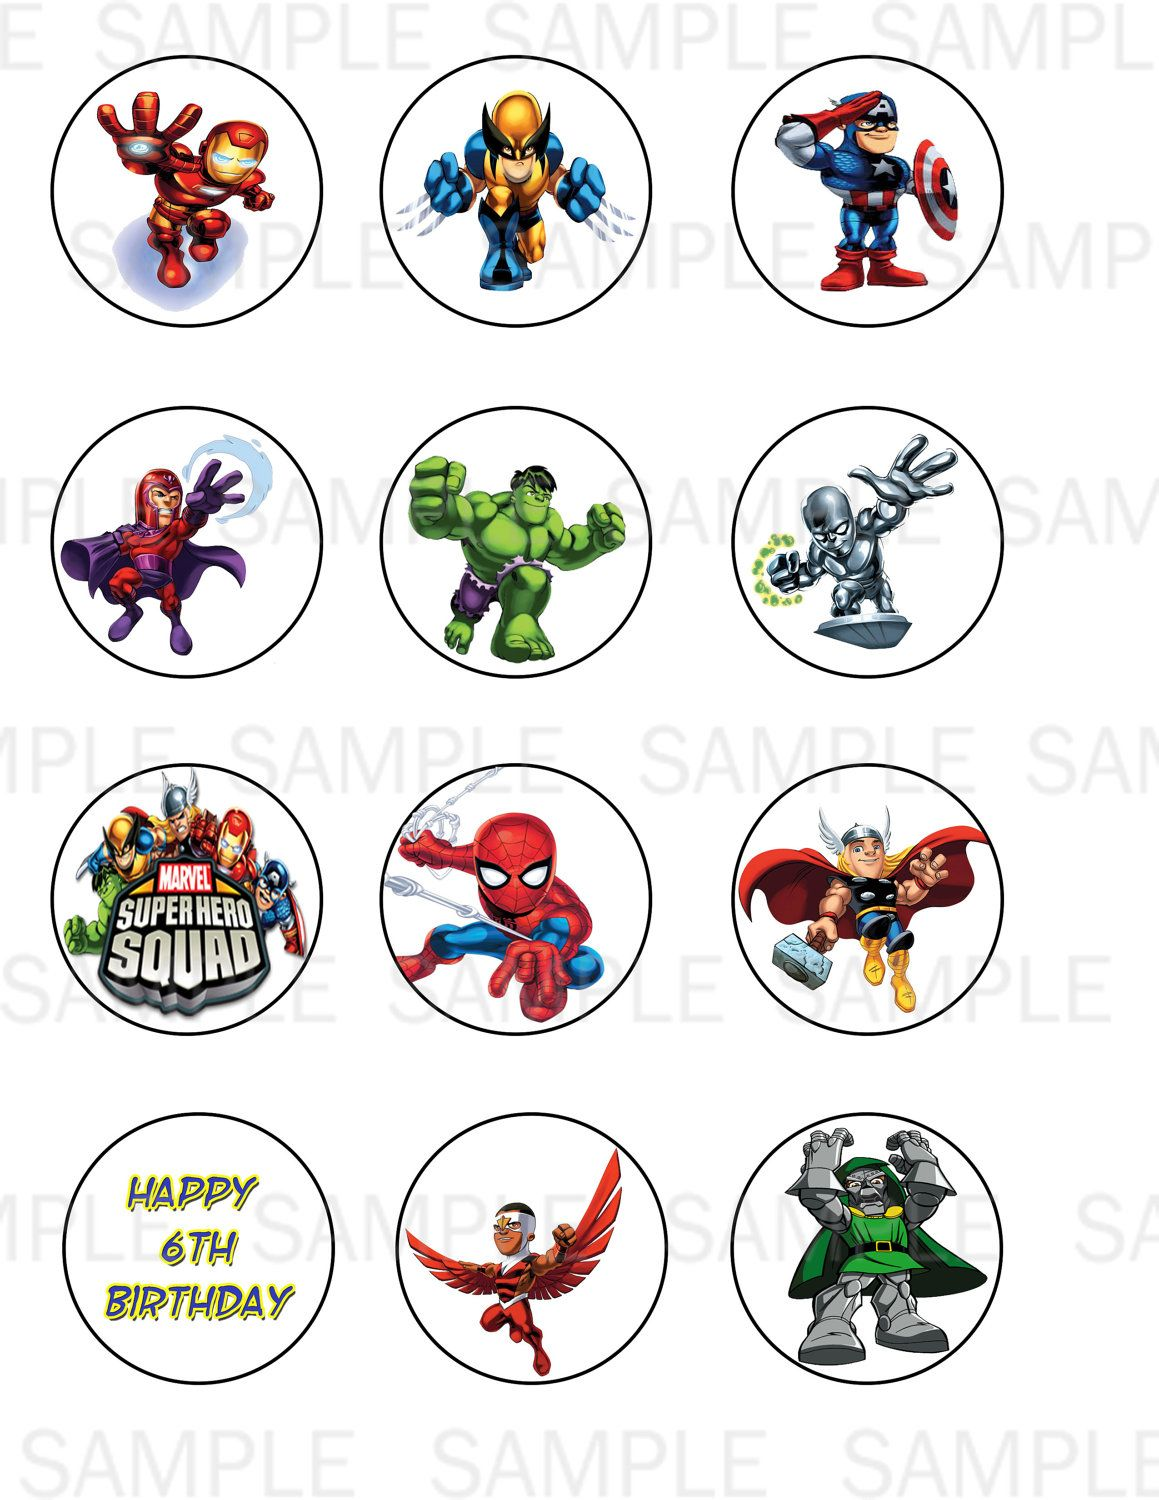 Printable Super Hero Squad Cupcake Toppers